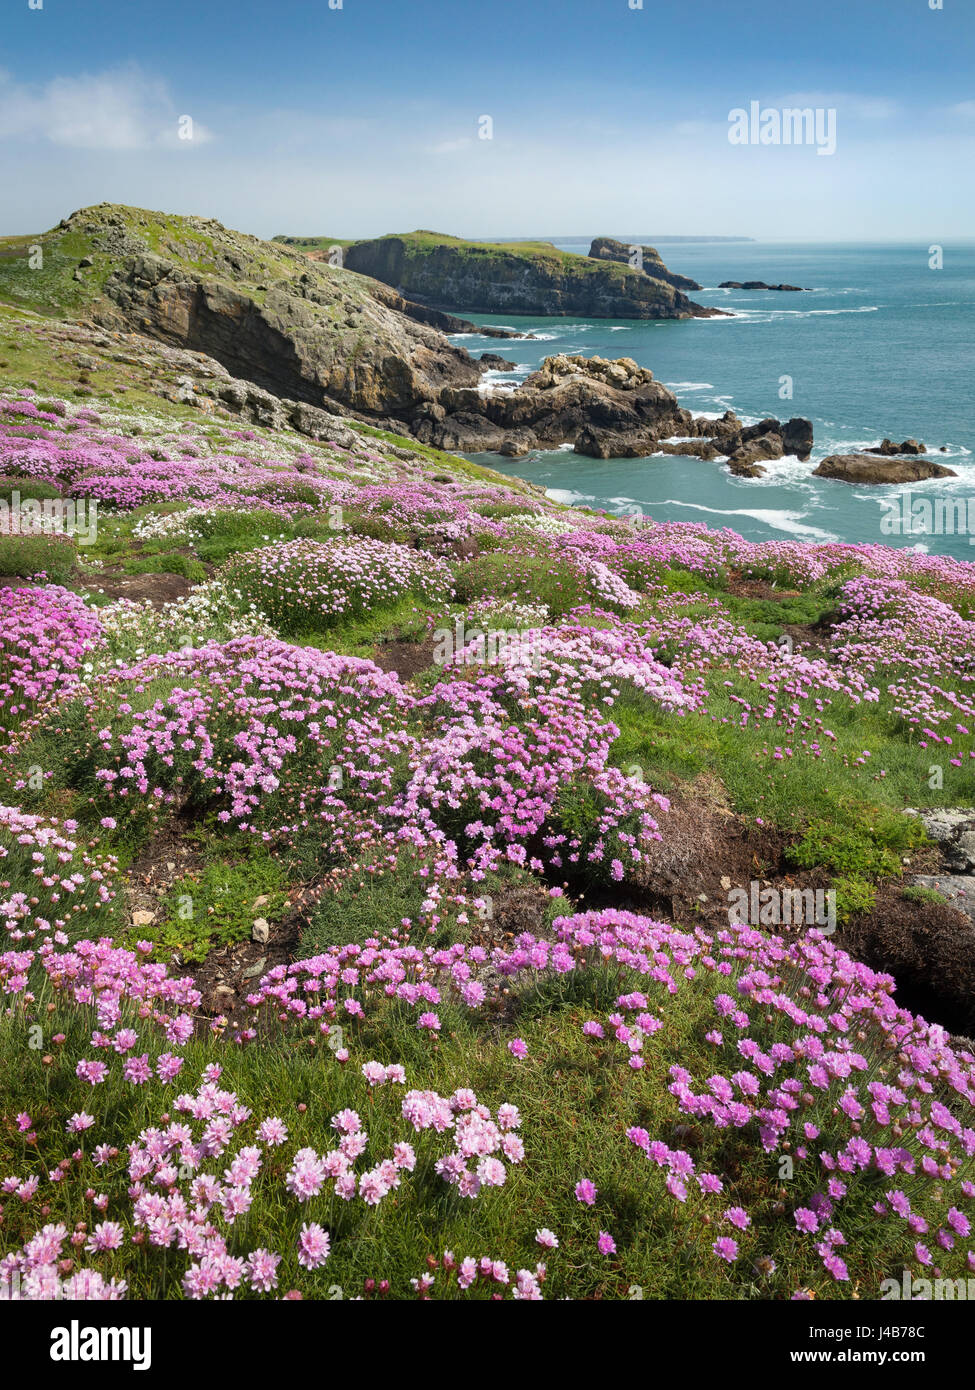 Swathes of Thrift carpet the Manx Shearwater burrows at Skomer Head on Skomer Island, Pembrokeshire, Wales, UK Stock Photo